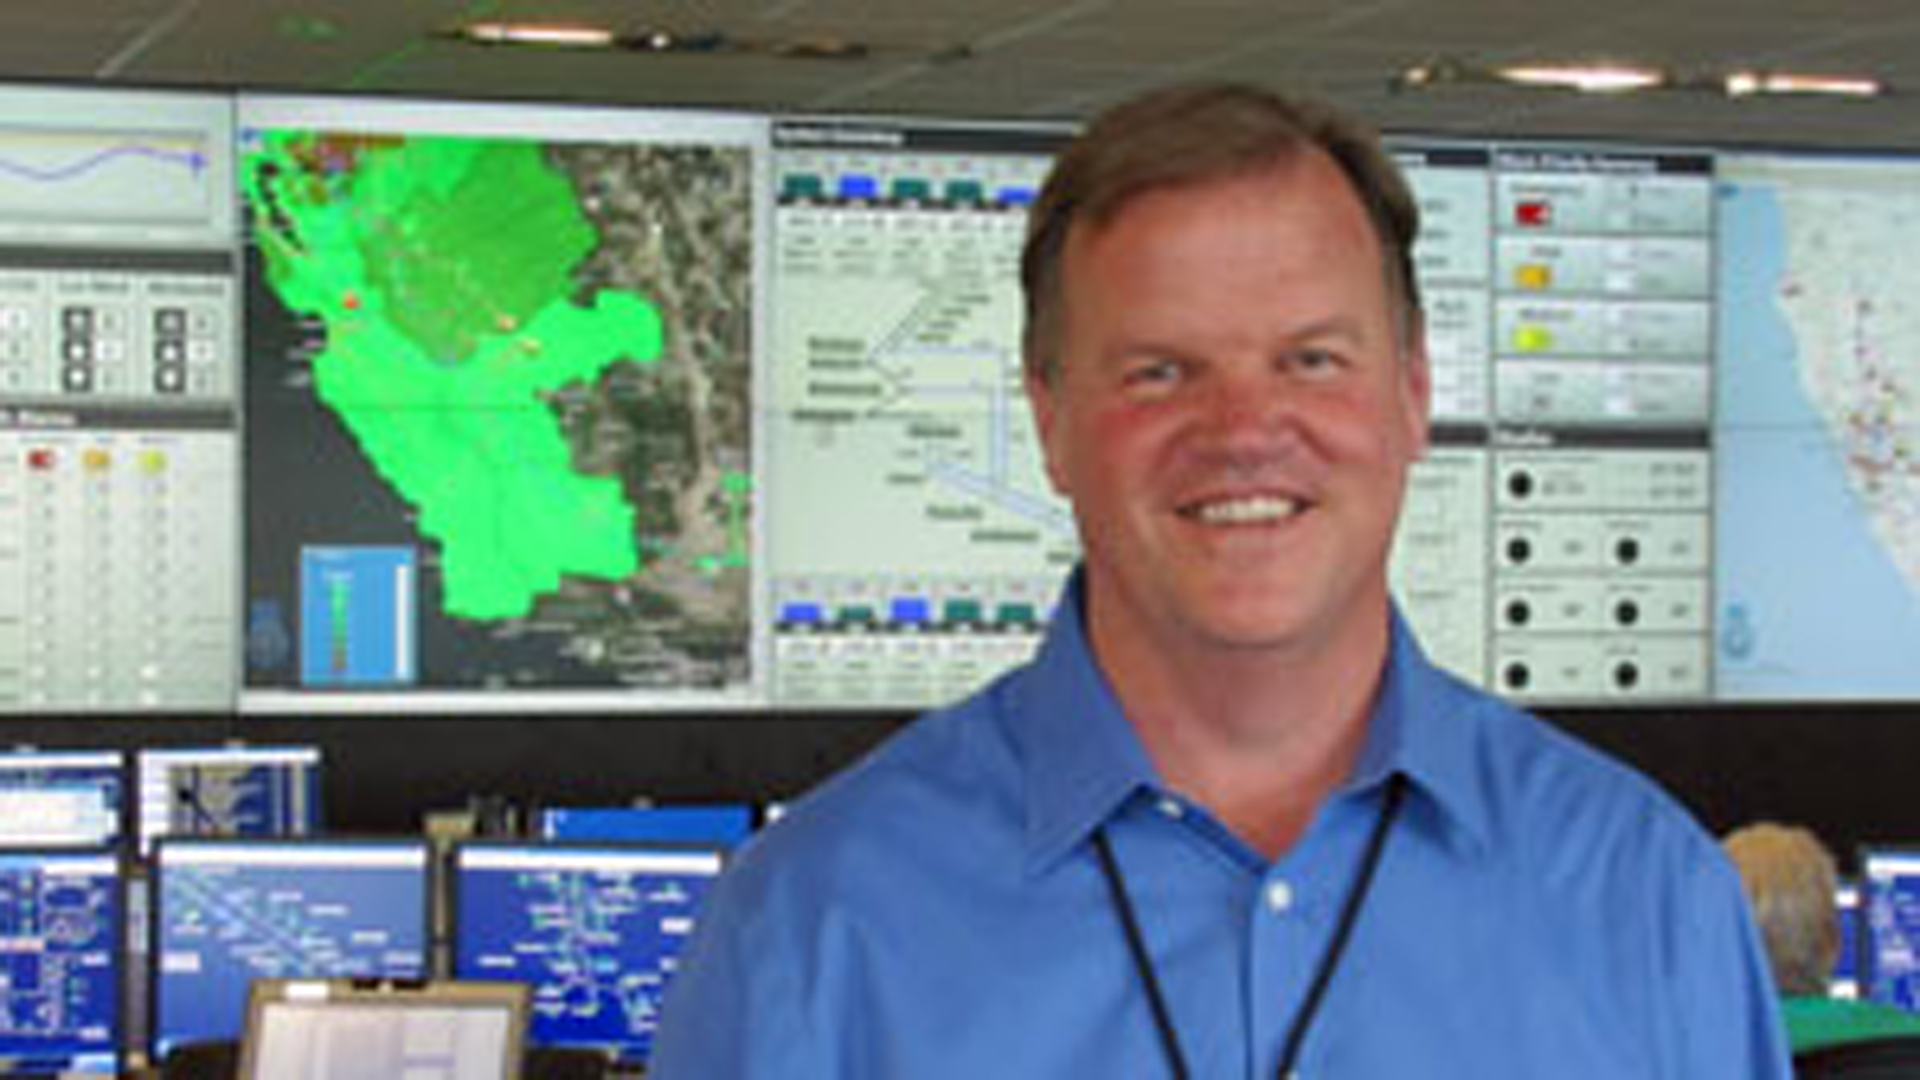 Mel Christopher appears in a photo posted in a September 2013 blog post on Pacific Gas and Electric's website.